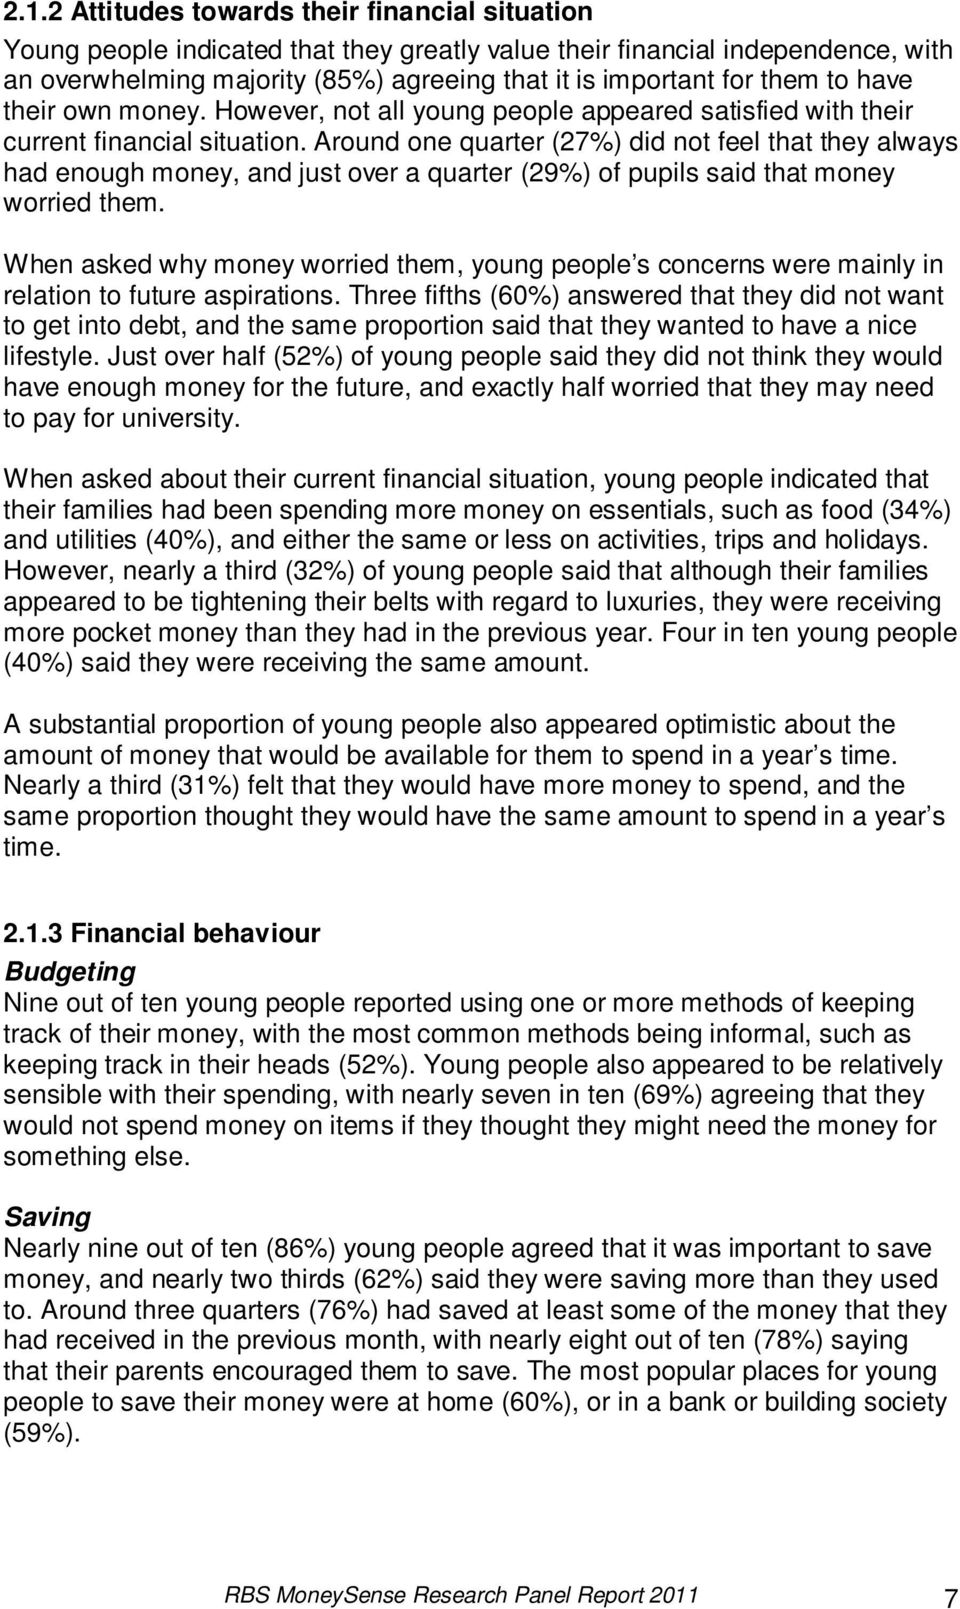 Around one quarter (27%) did not feel that they always had enough money, and just over a quarter (29%) of pupils said that money worried them.